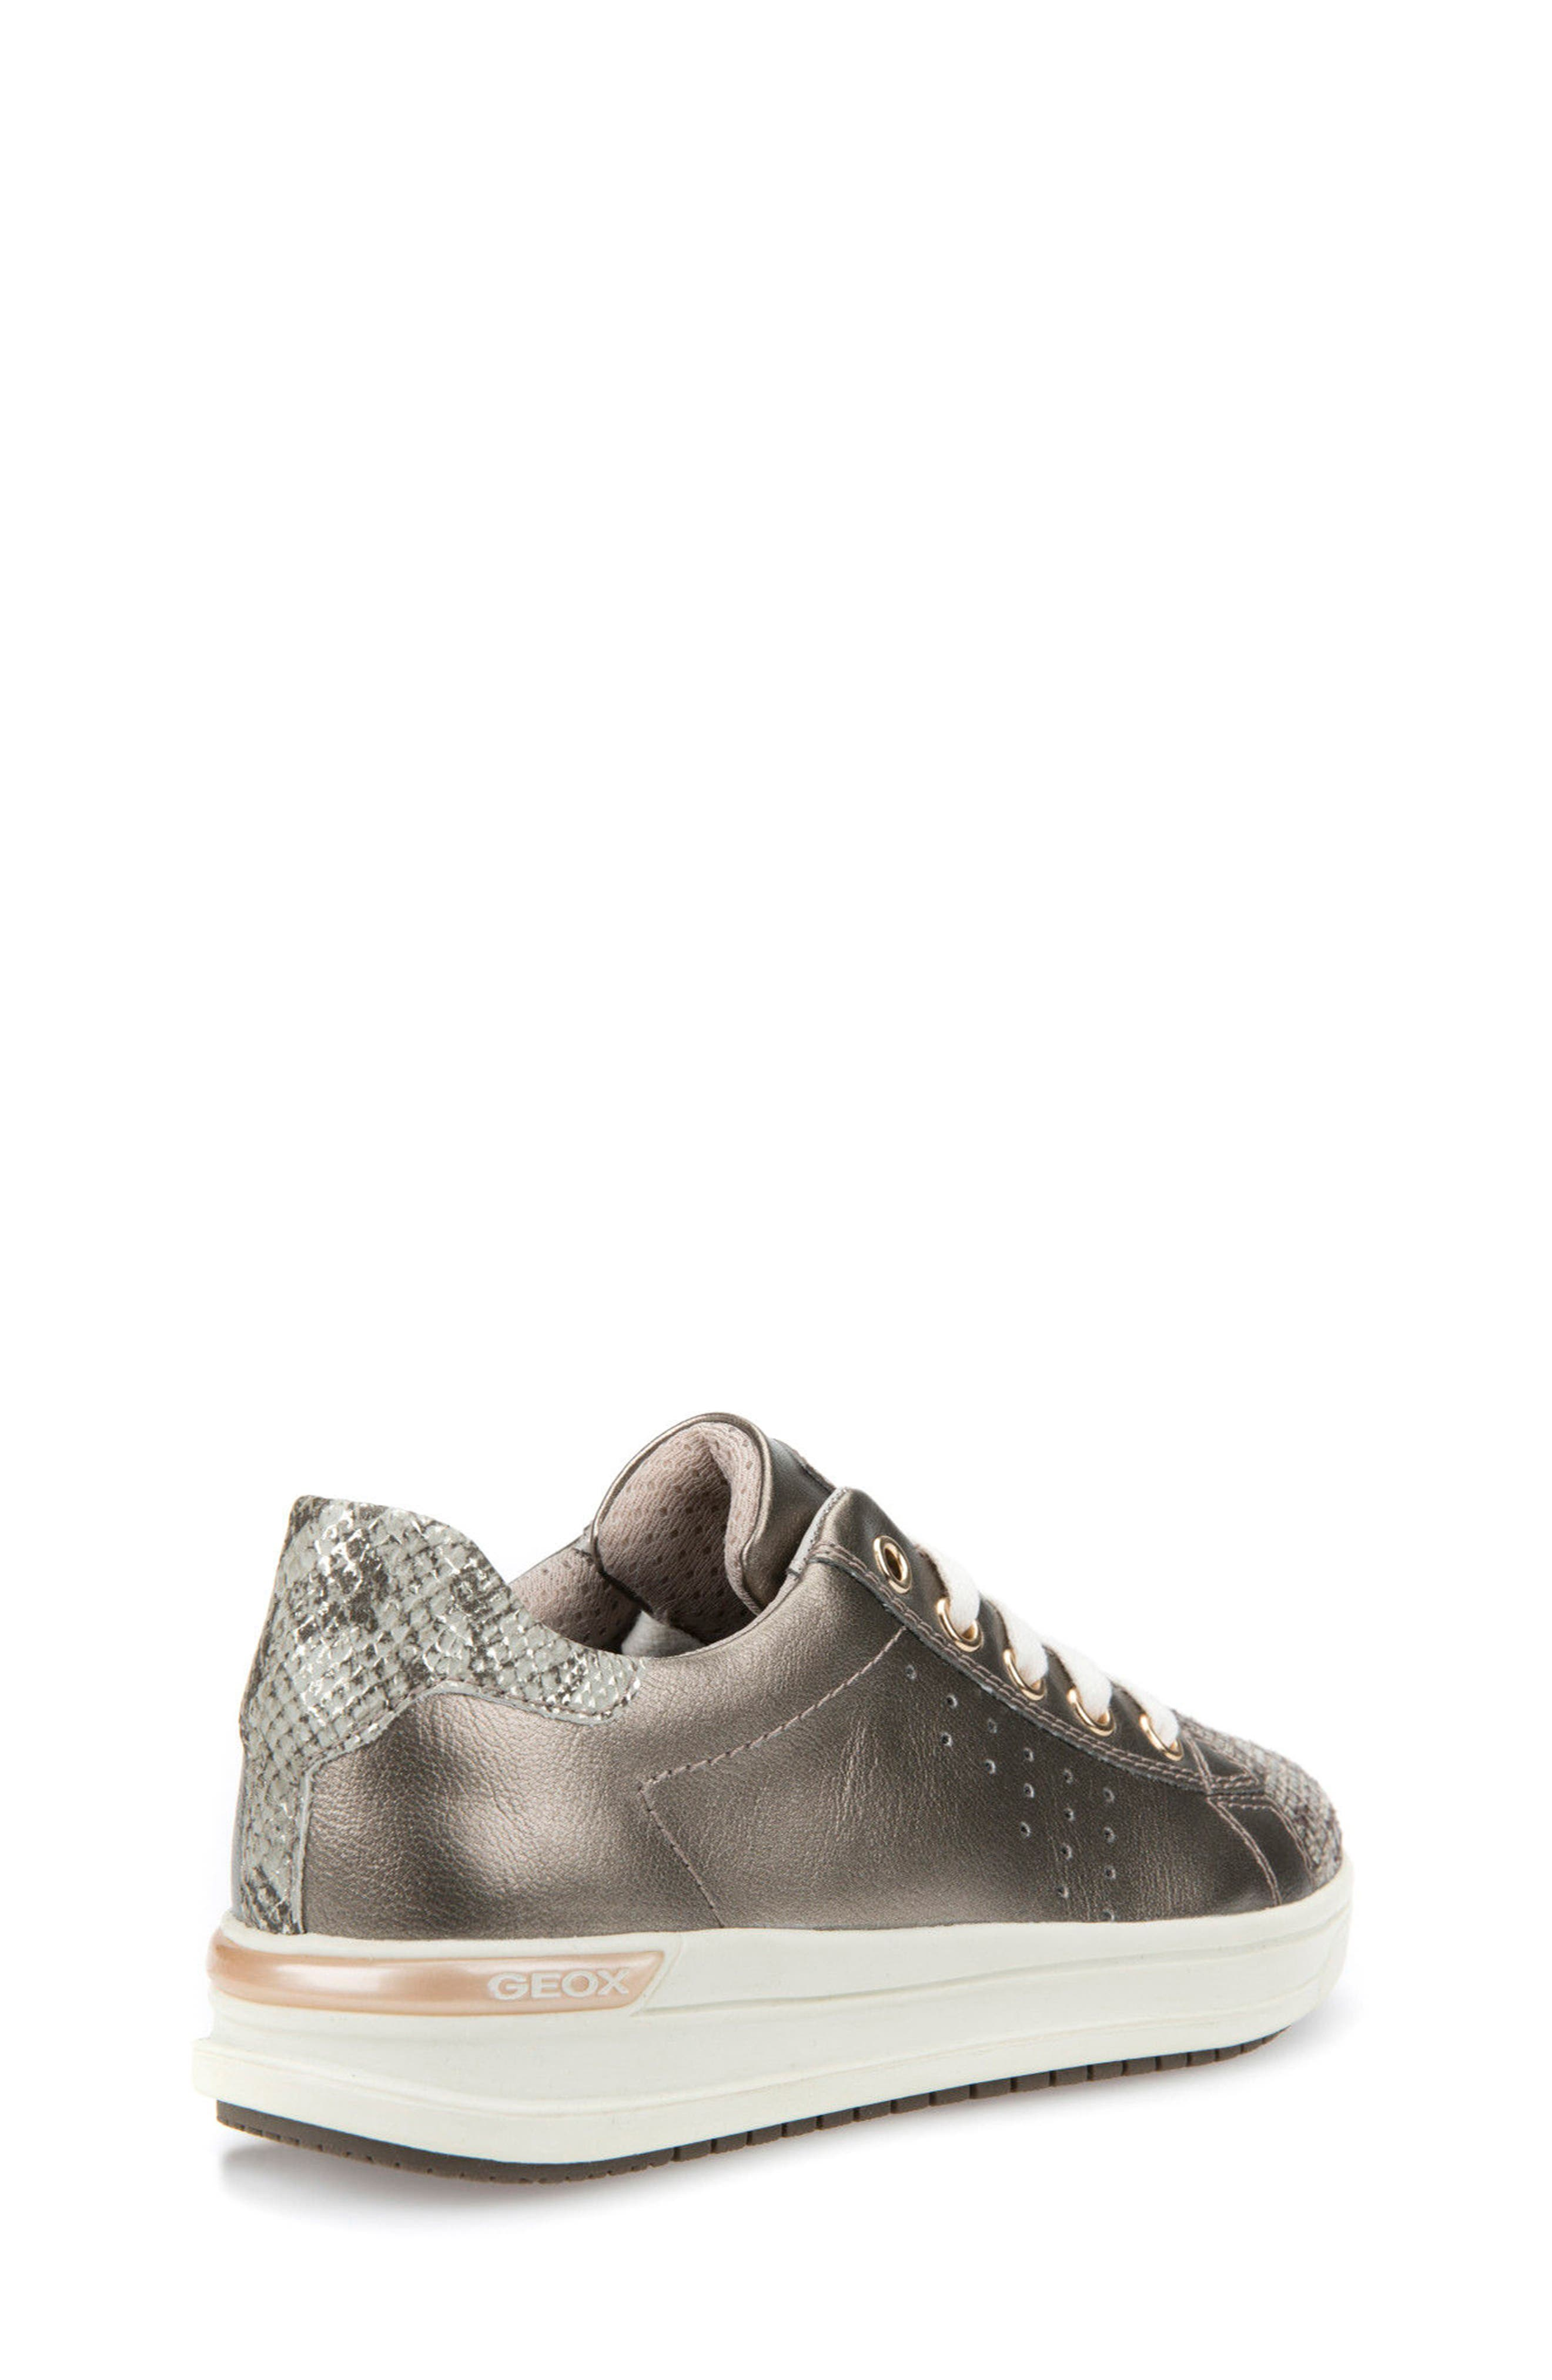 Cave Up Girl Low Top Sneaker,                             Alternate thumbnail 7, color,                             Gold